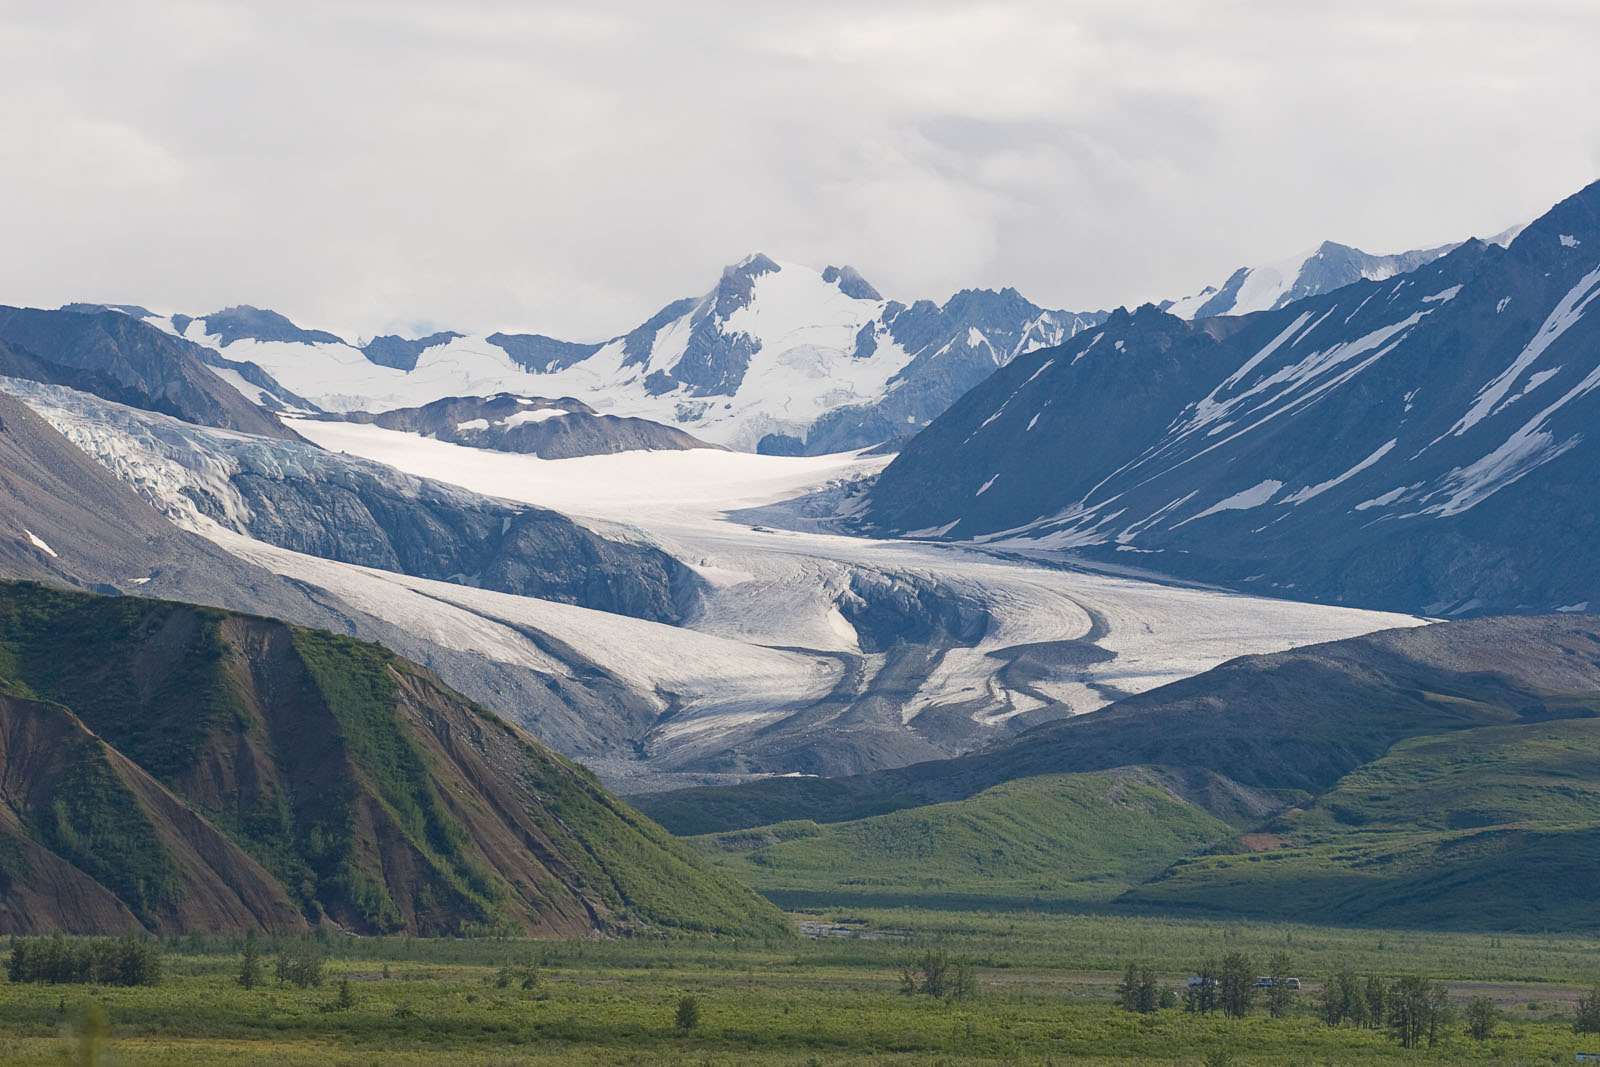 The Gulkana Glacier is an iconic landmark for north-bound travelers (or, I suppose, south-bound travelers looking north) on the Richardson Highway.  Thankfully, its silty runoff drains not into the Gulkana River drainage but into Phelan Creek in the Yukon drainage instead. From Richardson Highway near Summit Lake in Alaska.